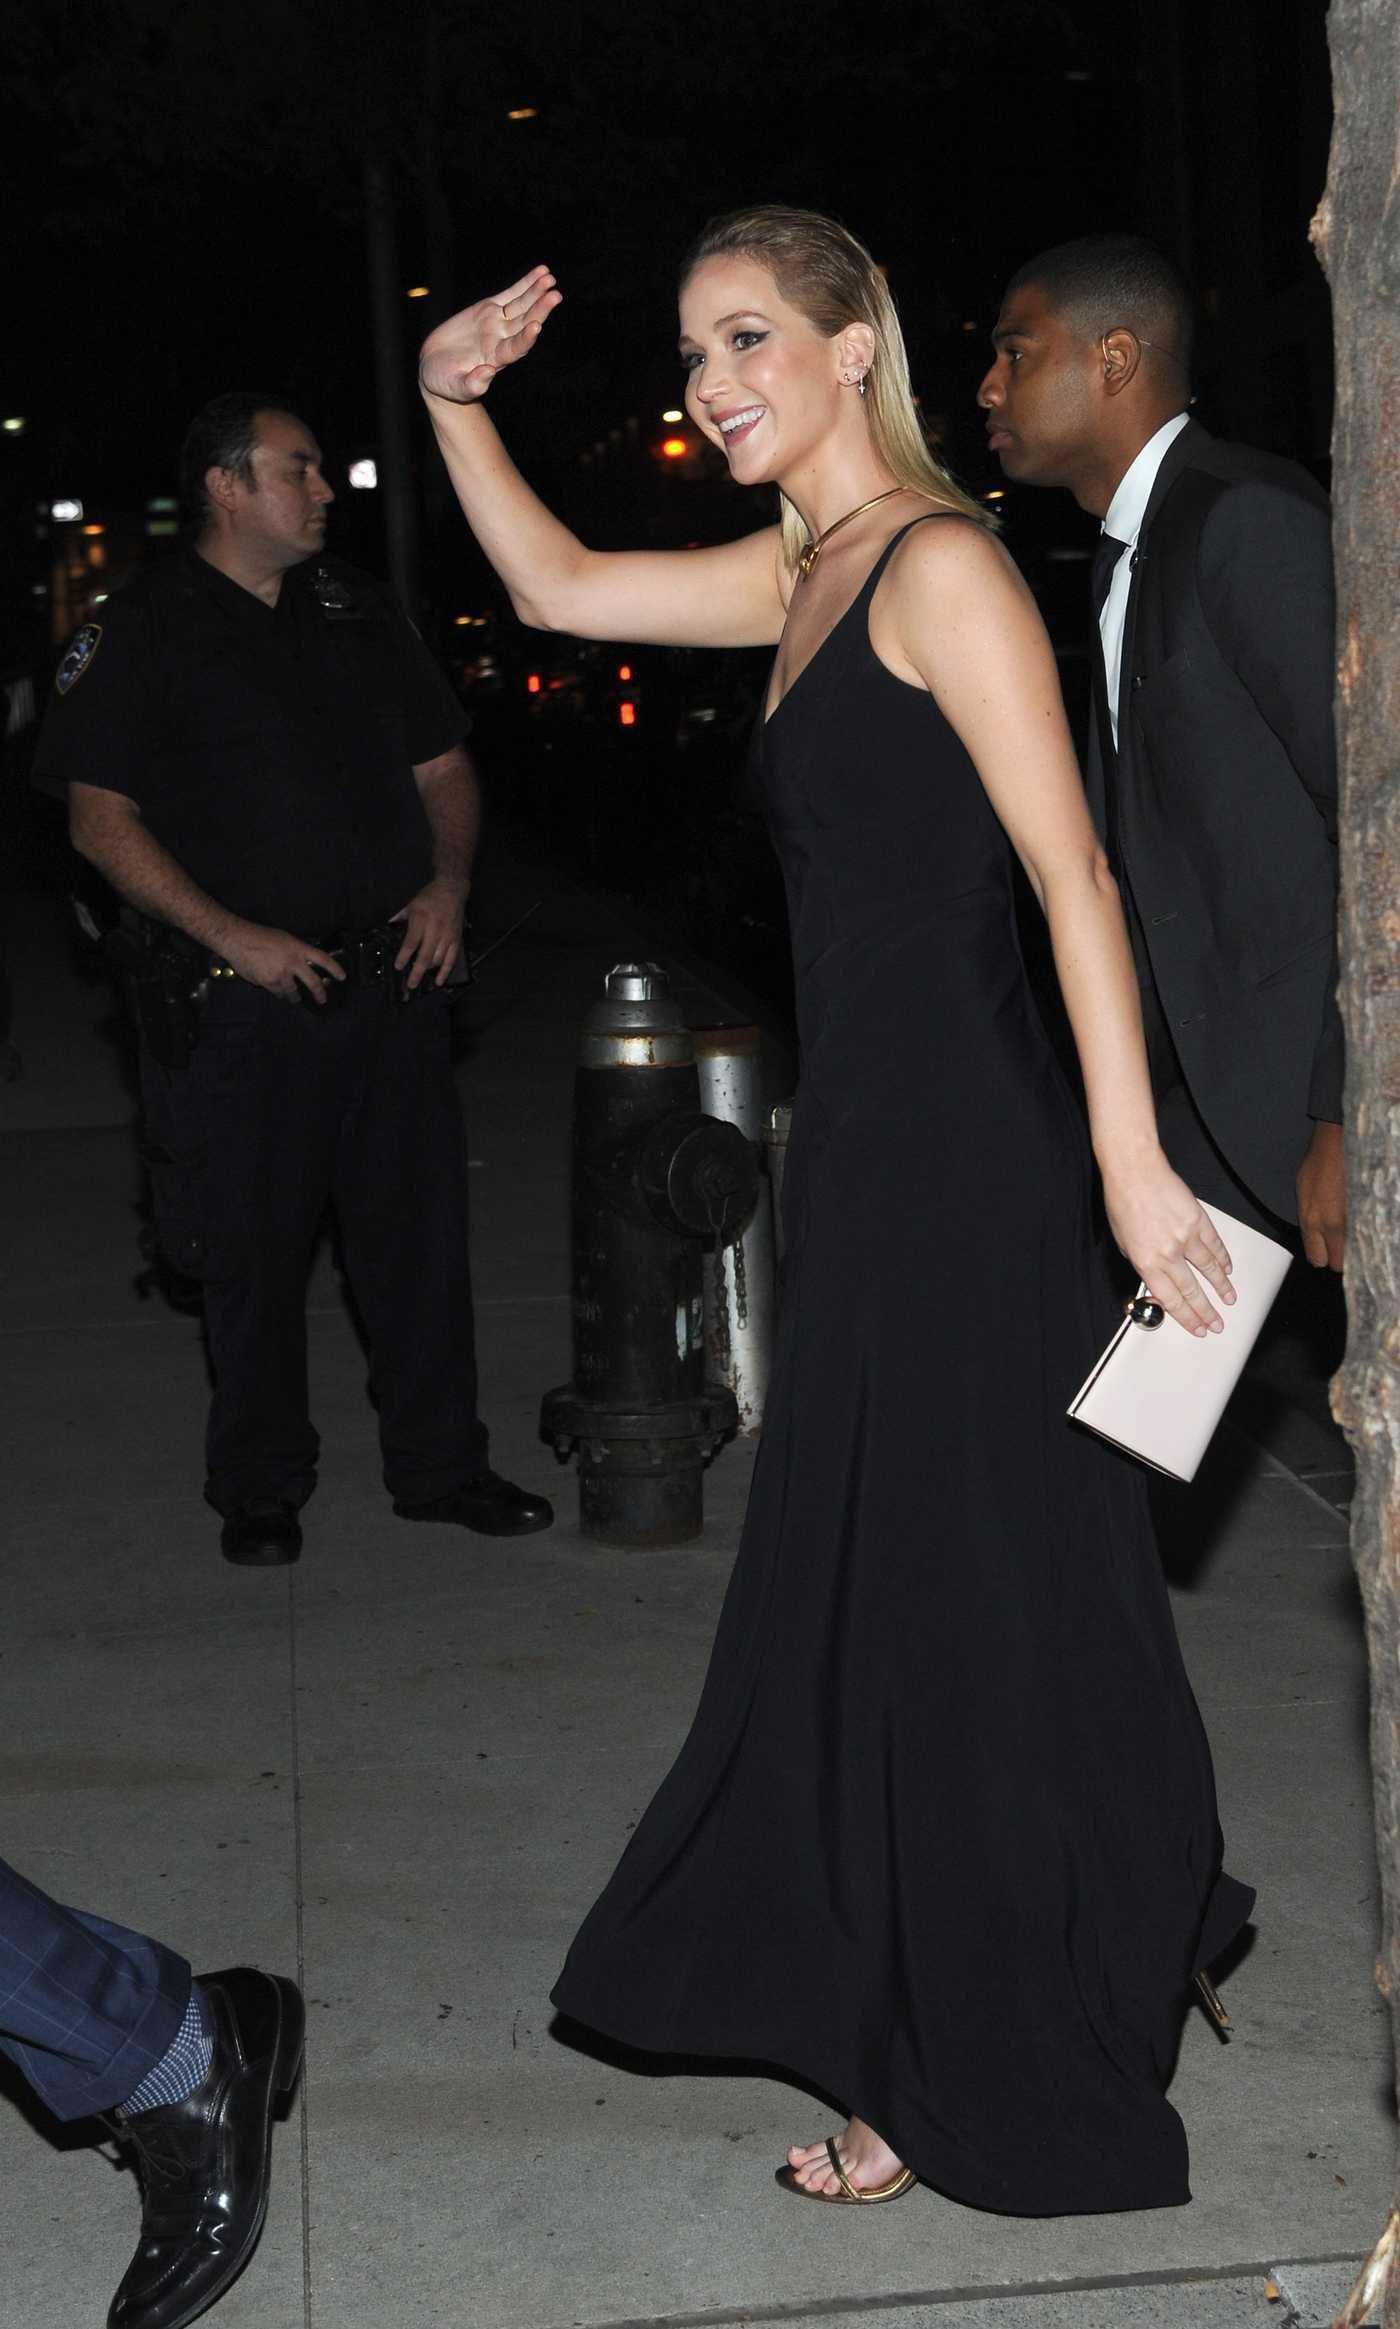 Jennifer Lawrence Arrives at The Favourite Premiere in New York City 09/28/2018